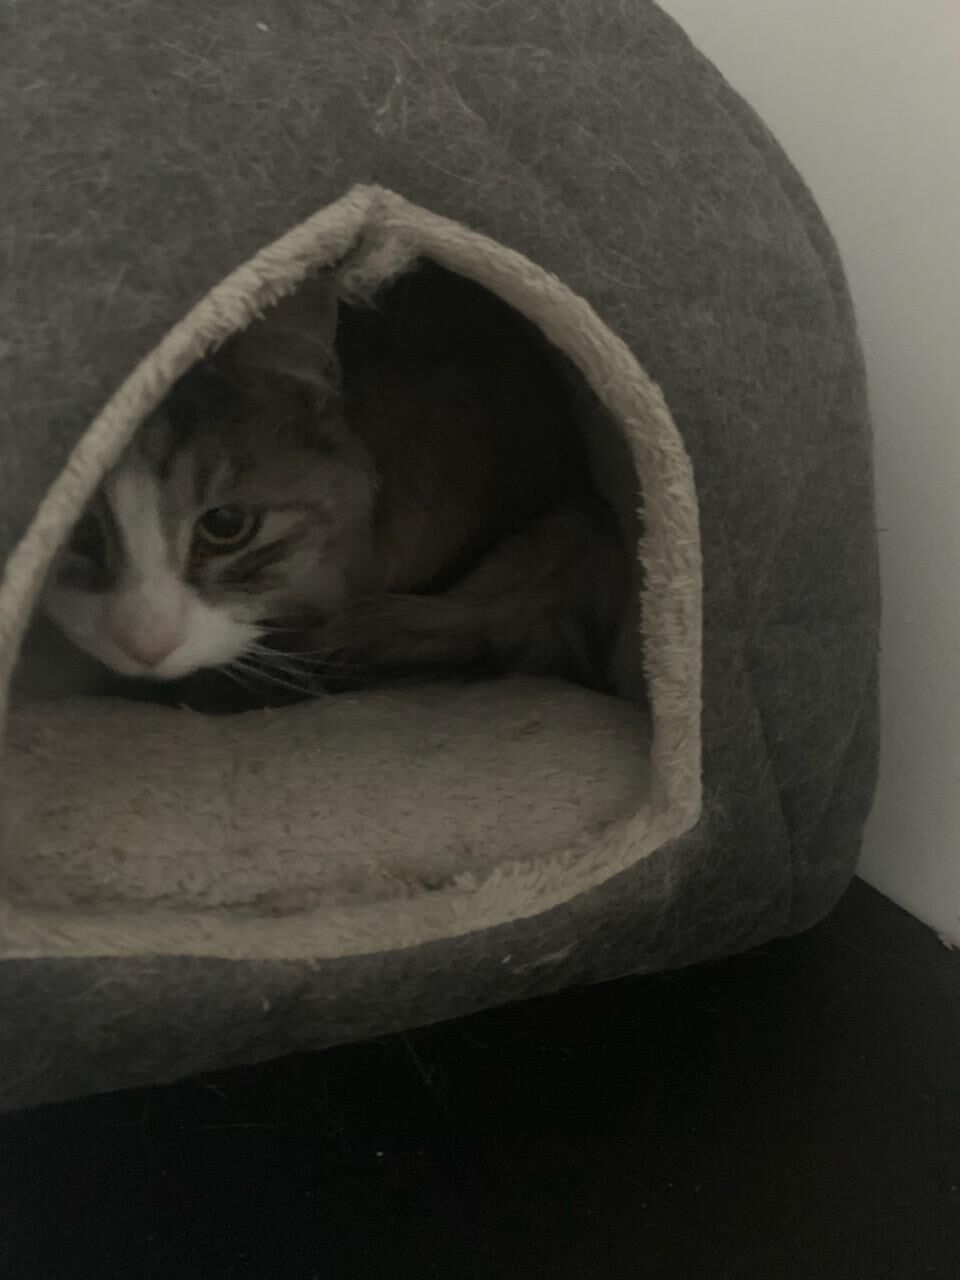 Cat crouched inside a cat bed, peering out at the camera